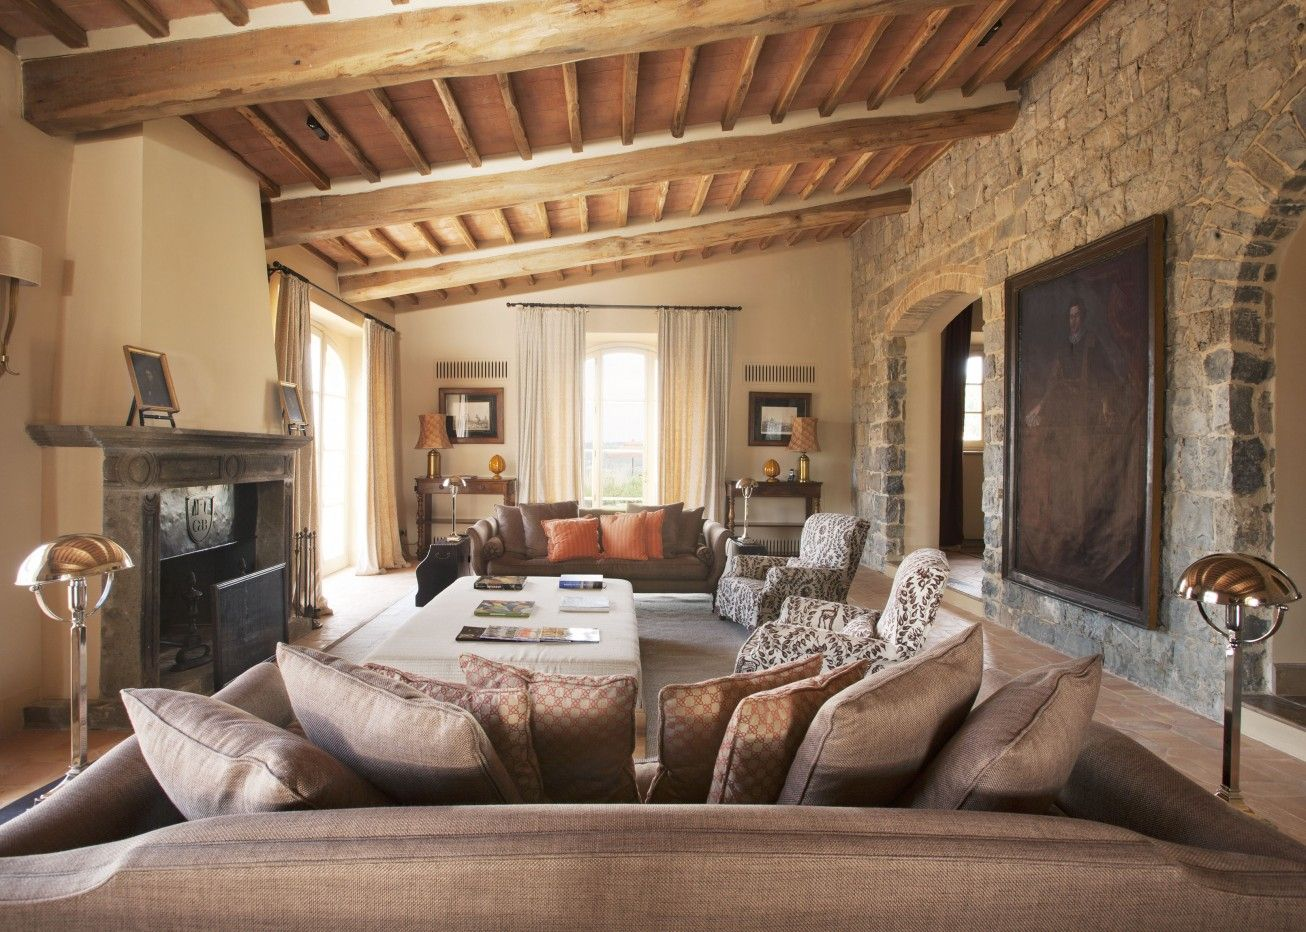 Best 10 Stunning Tuscan Living Room Designs : Contemporary Tuscan Style  Living Room Decoration With Brown Fabric Sofa And Half Nature Stone Wall  Also White ...